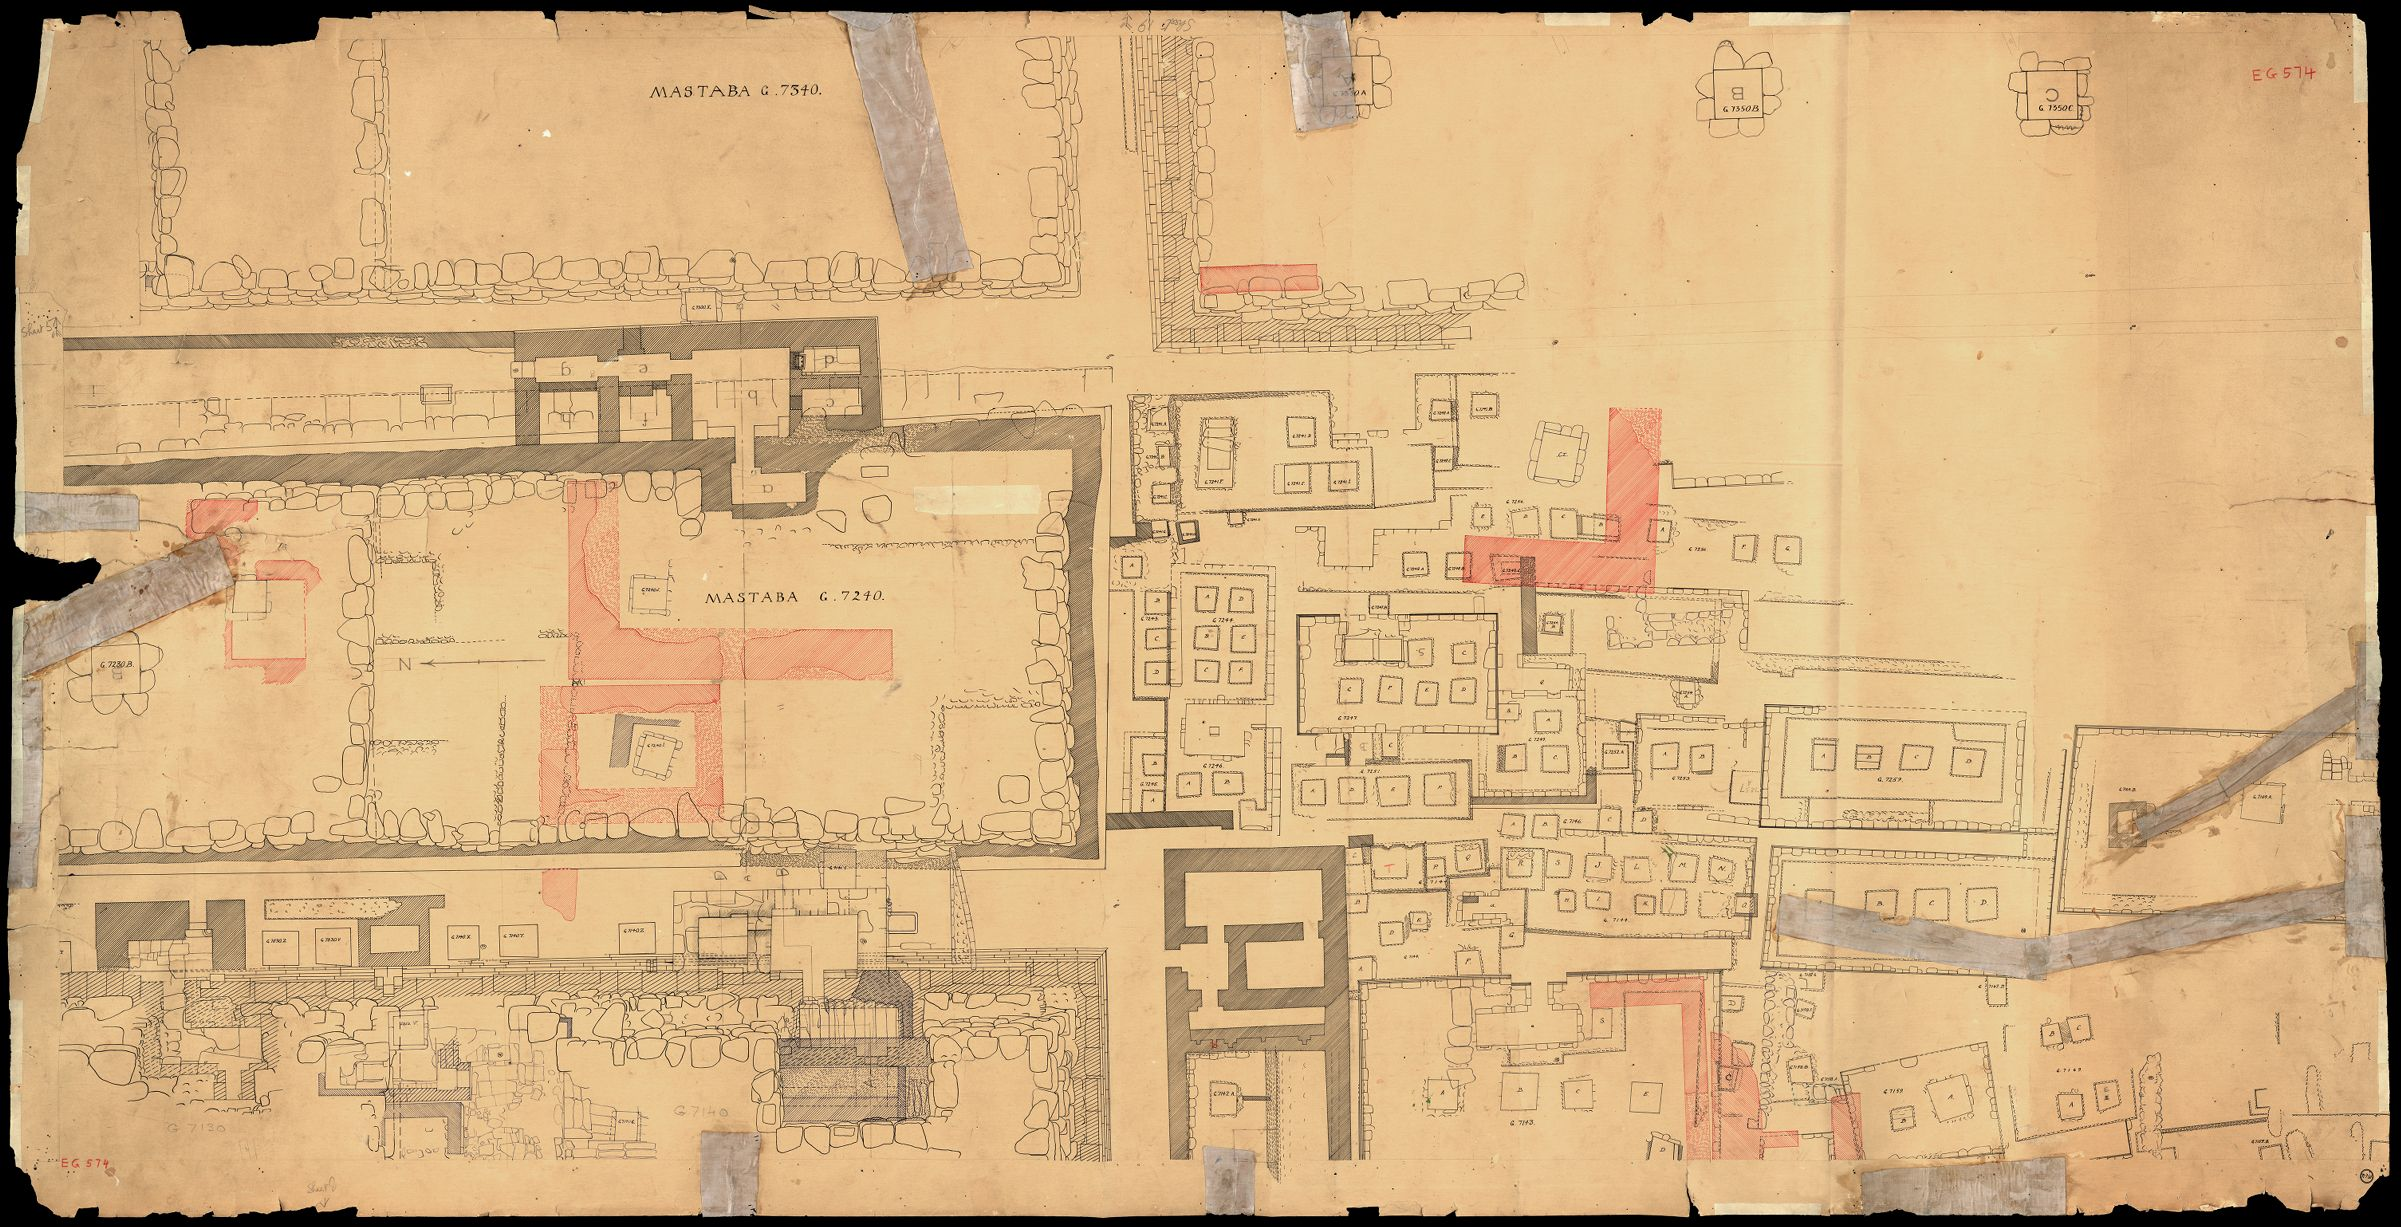 Maps and plans: Plan of cemetery G 7000: G 7230-7240 and area southwards